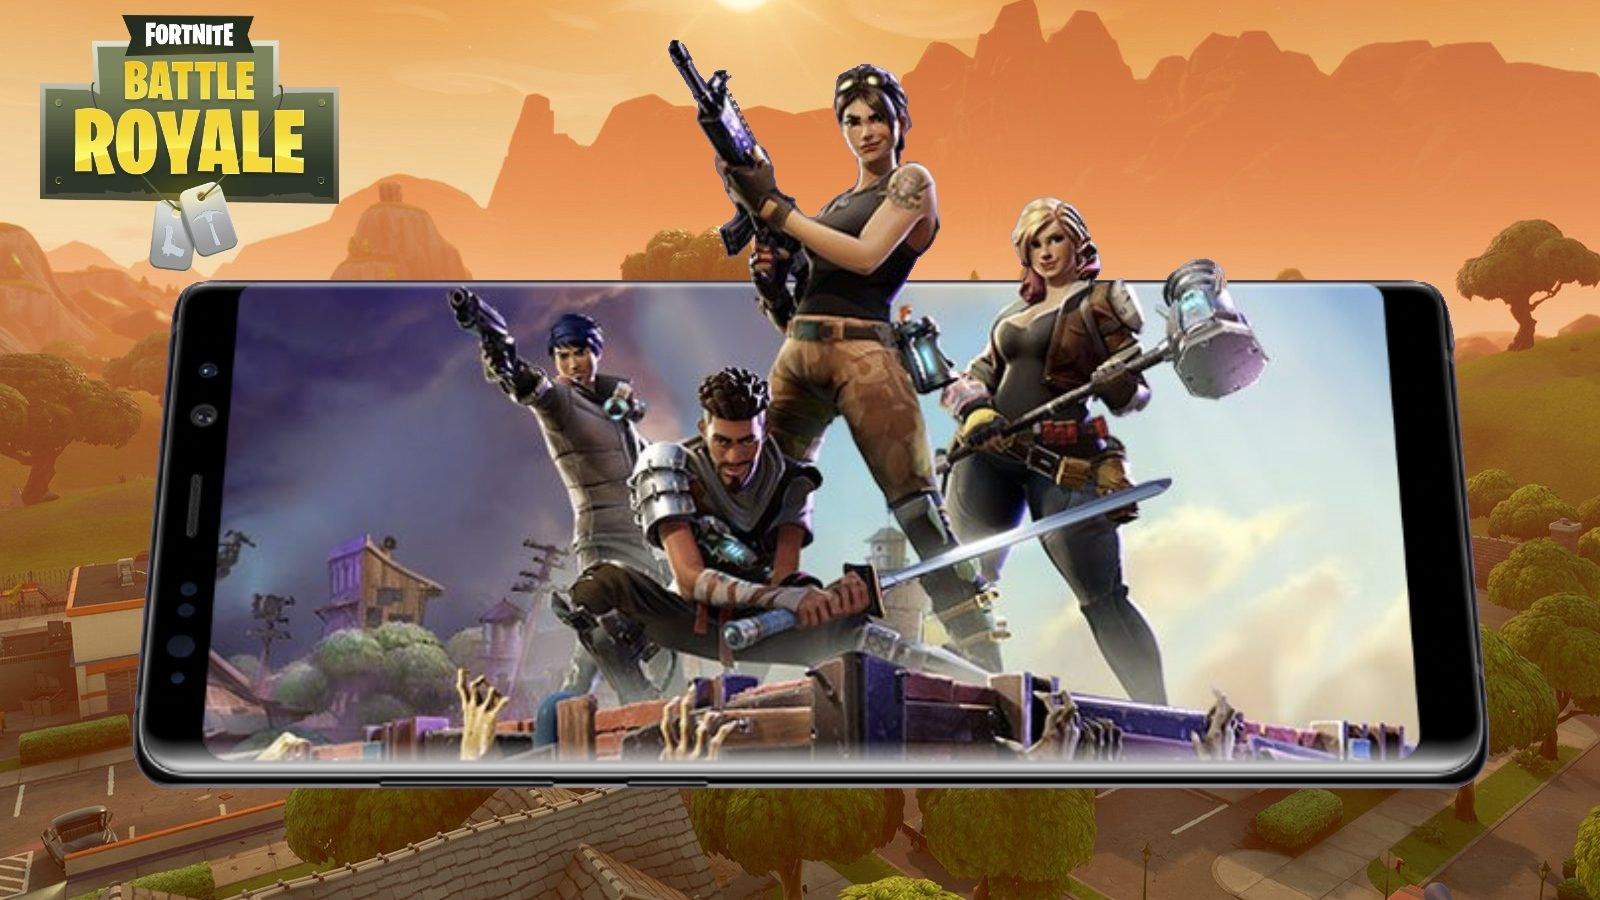 How to install Fortnite on Android Android apk, Mmo games